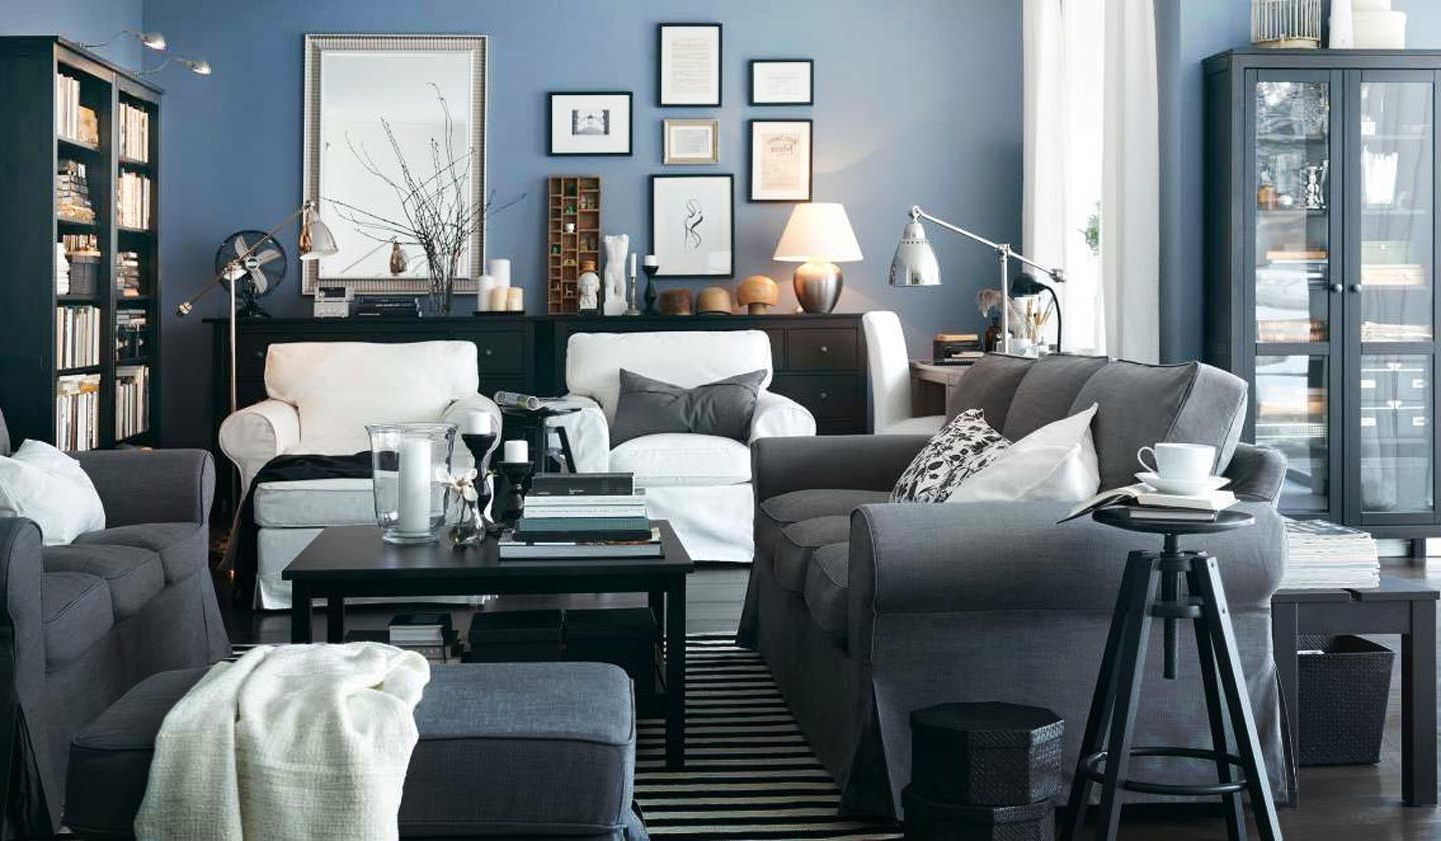 blue and gray interior - an interior design tribute to blue